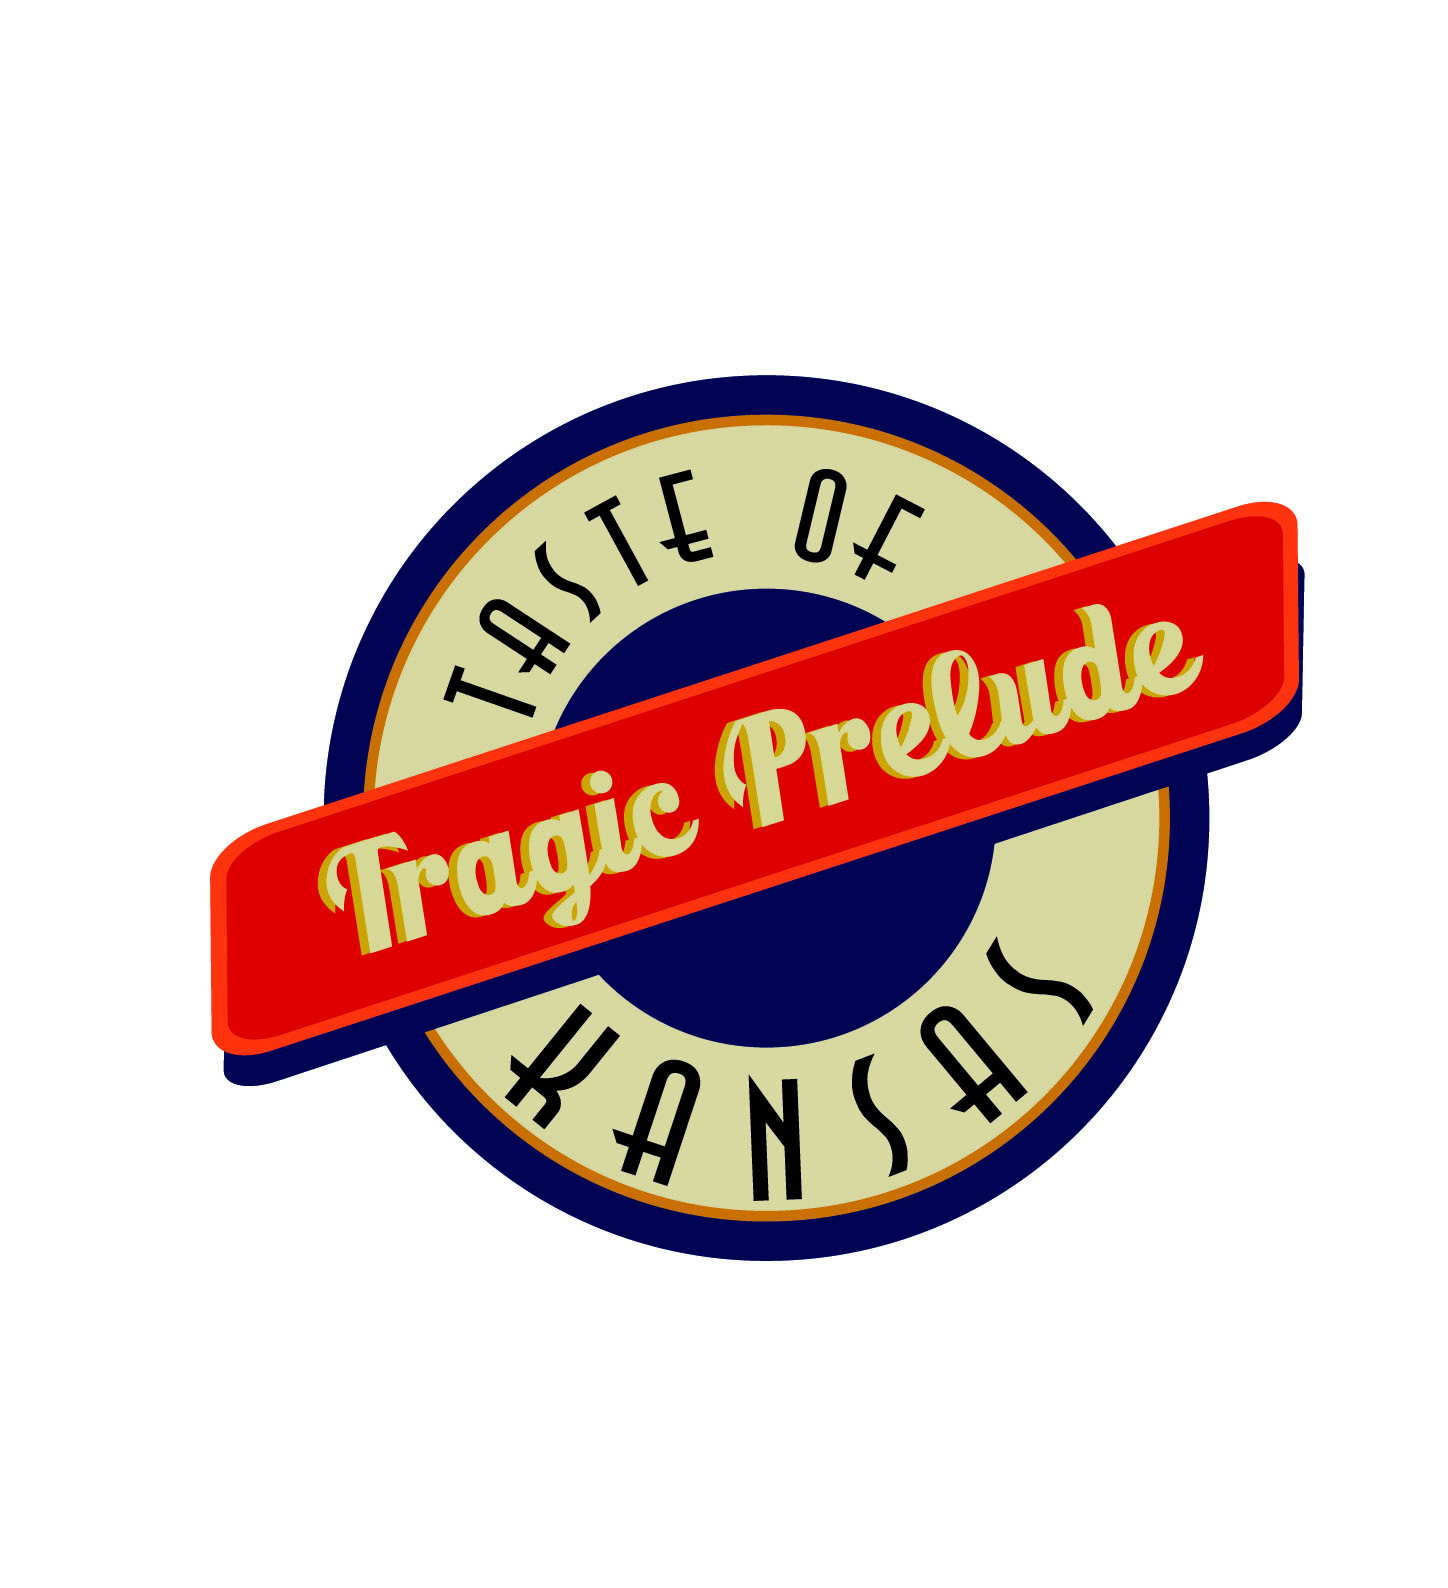 Taste of Kansas - Tragic Prelude